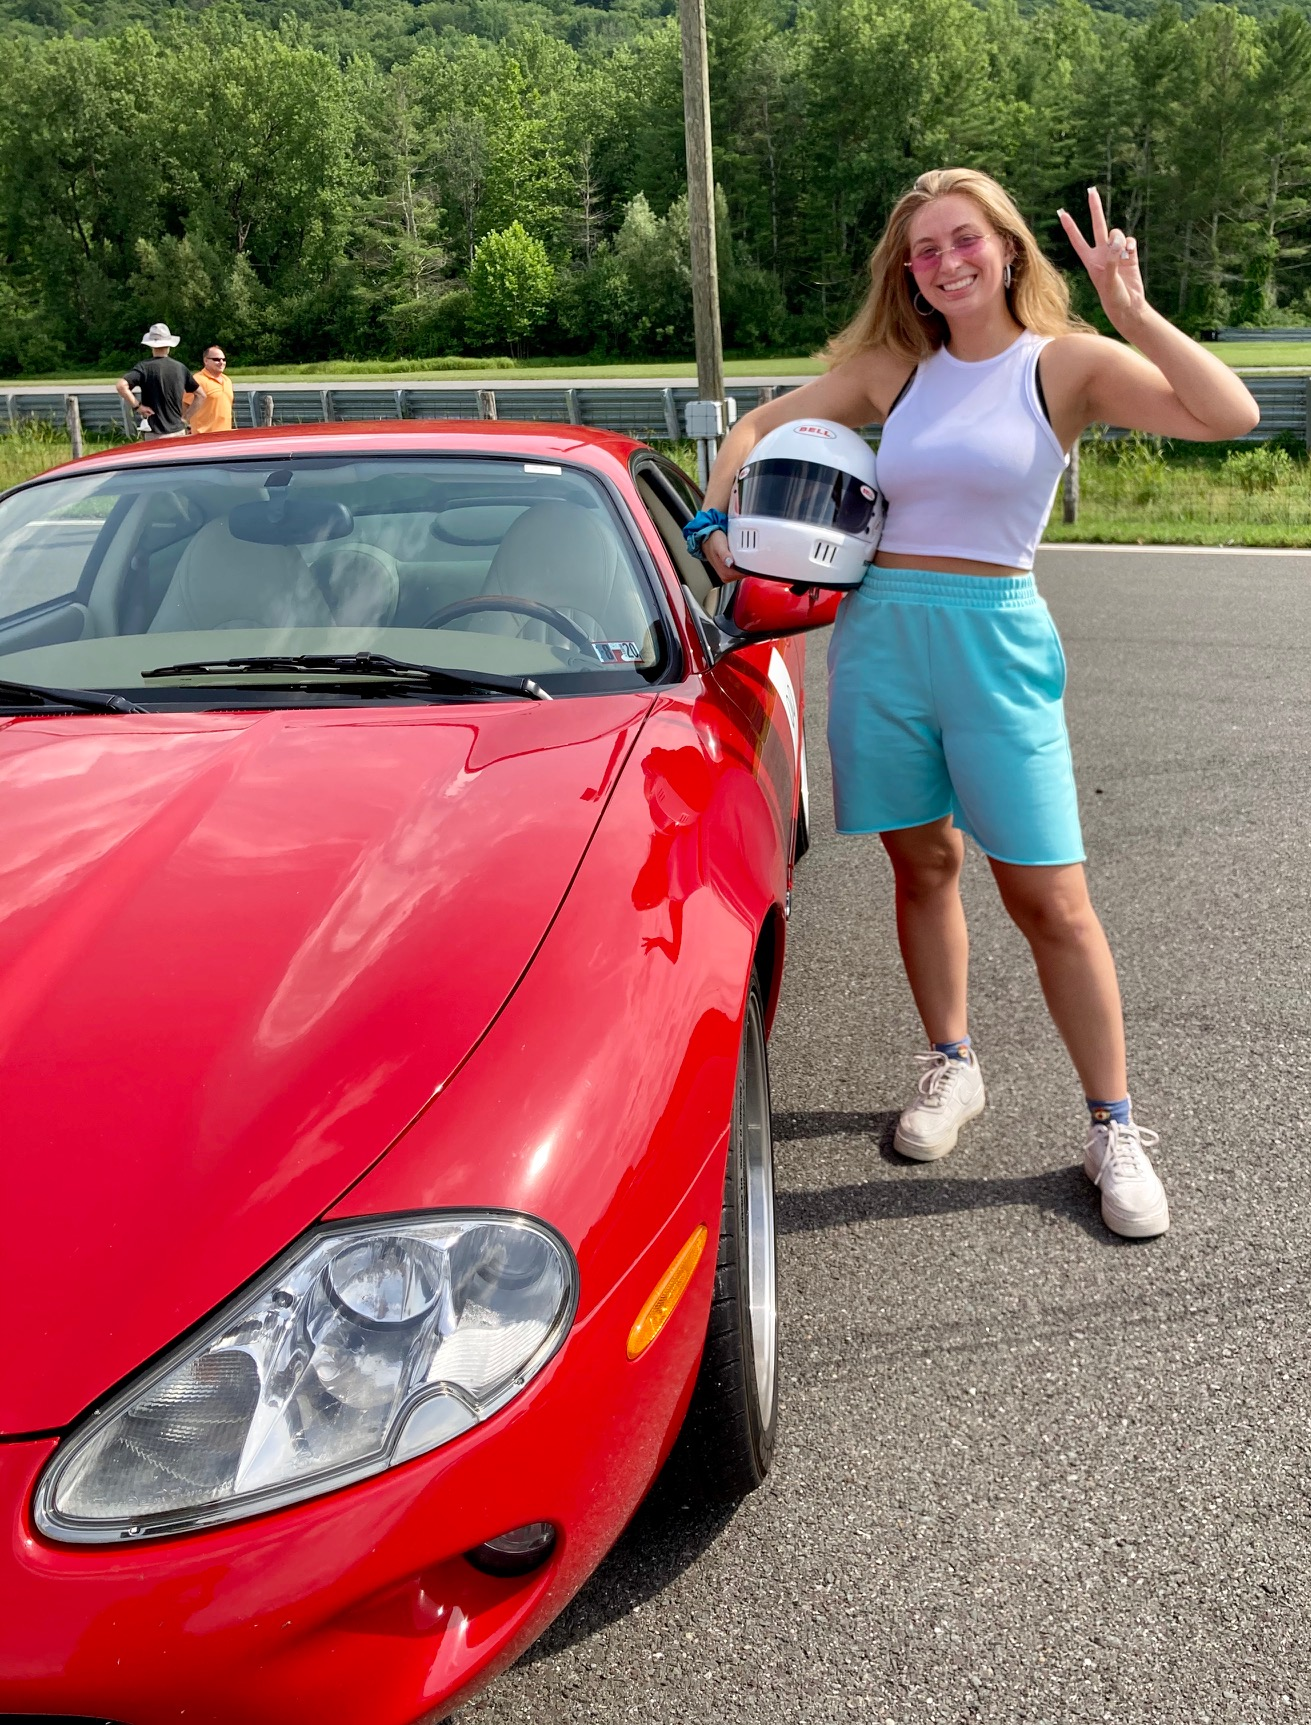 3rd generation member Victoria Clarkson at Lime Rock Park